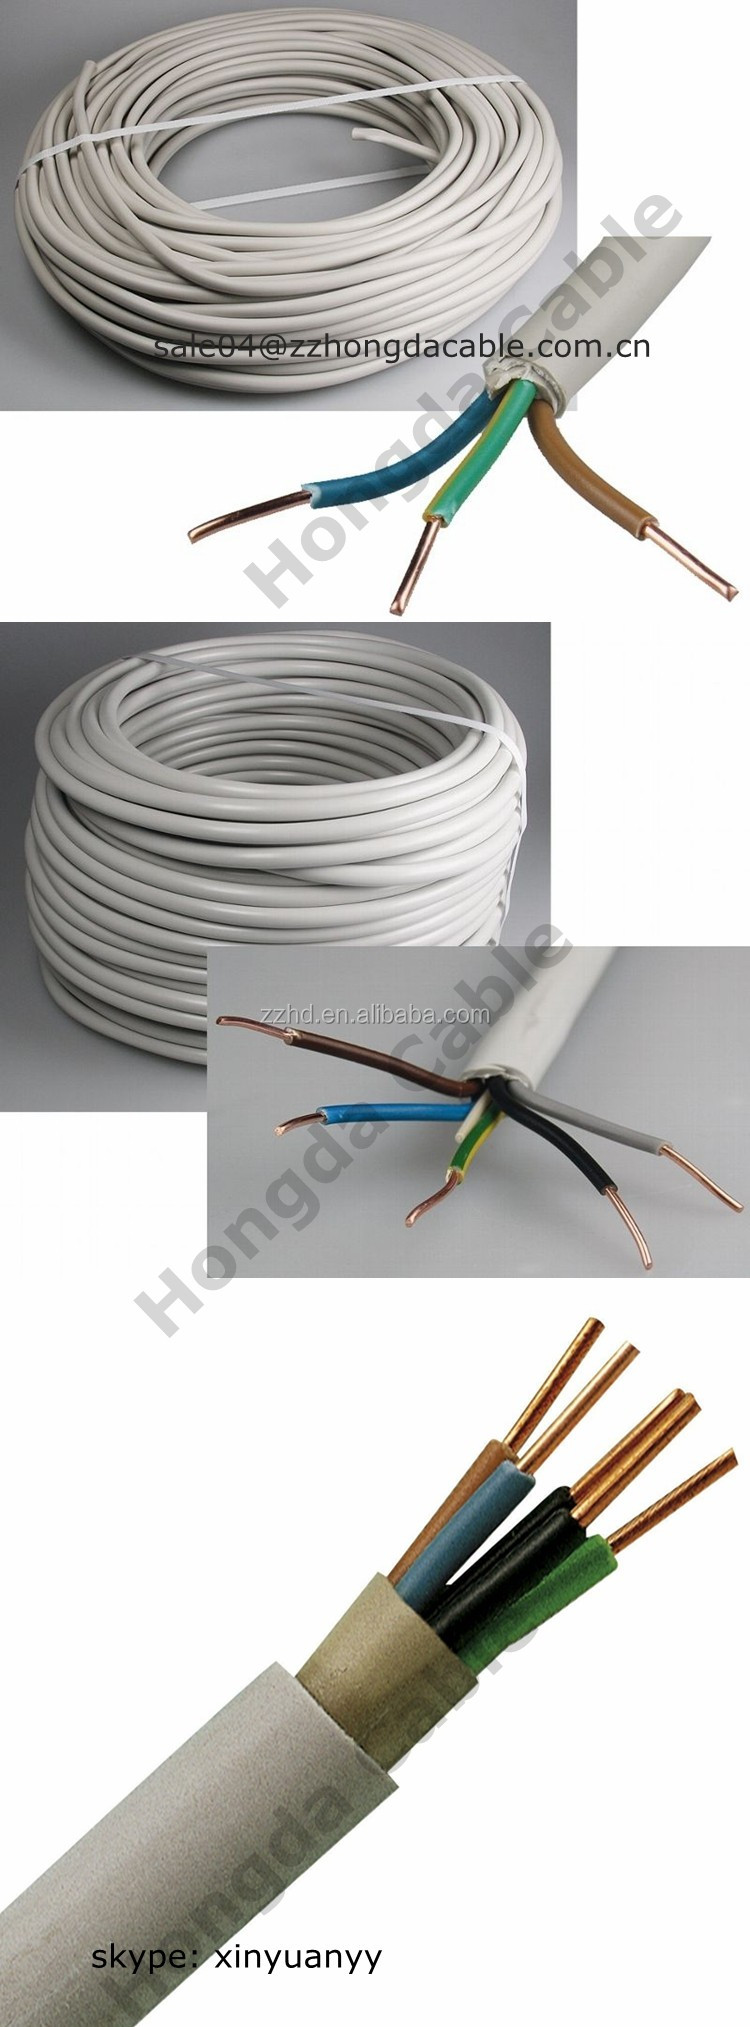 3 nym j pvc insulated pvc sheath cca conductor cable buy 3 nym j pvc insulated. Black Bedroom Furniture Sets. Home Design Ideas